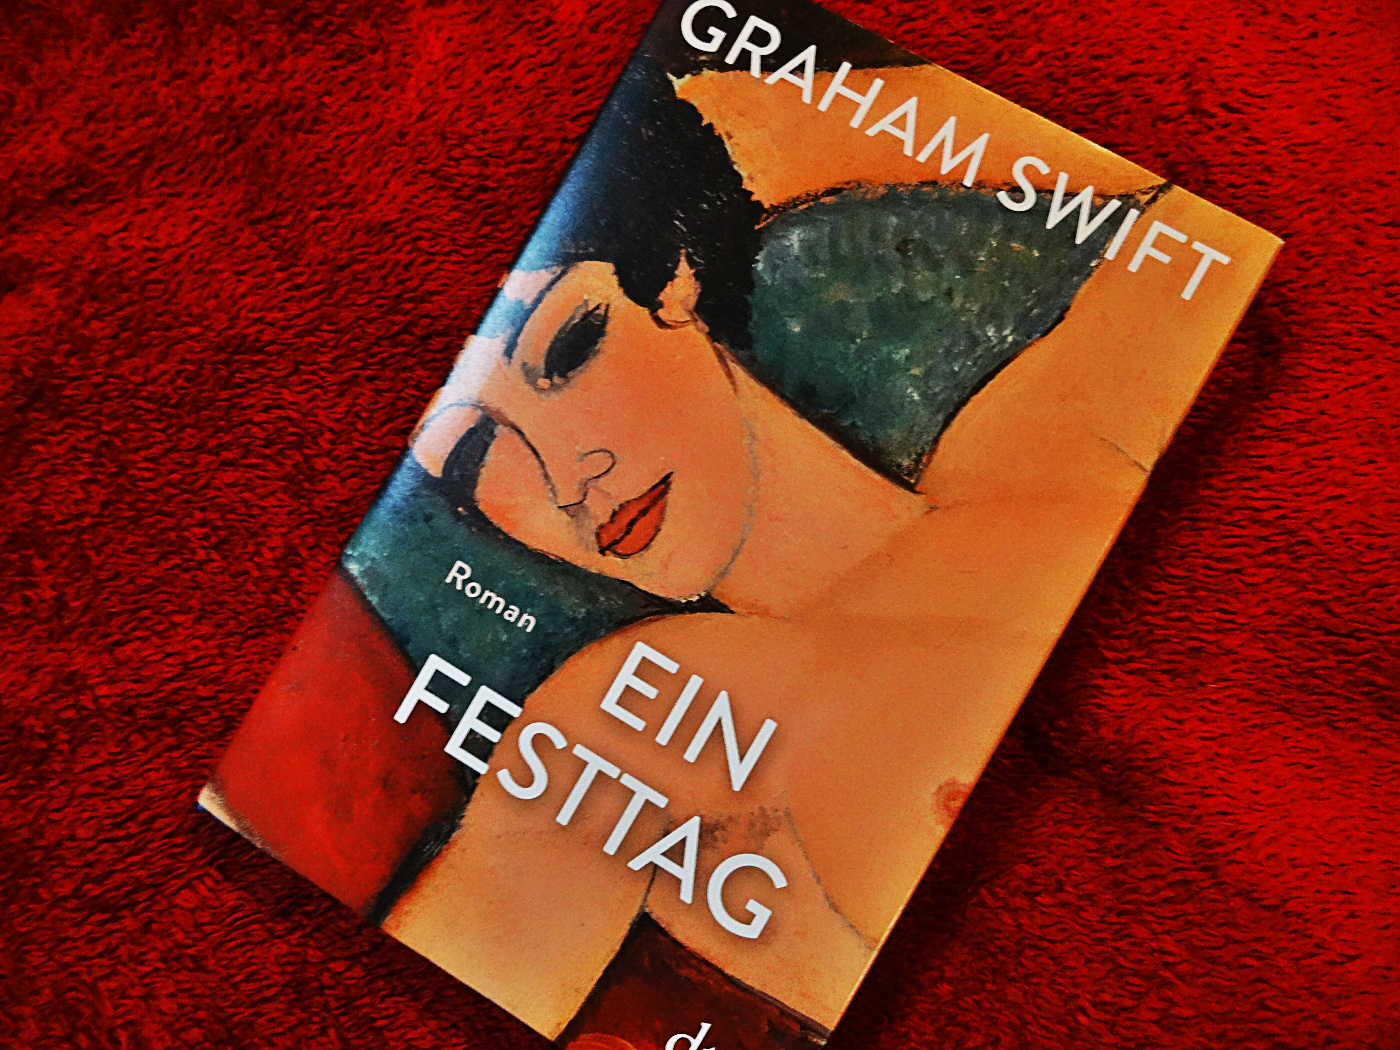 Graham Swift – Ein Festtag